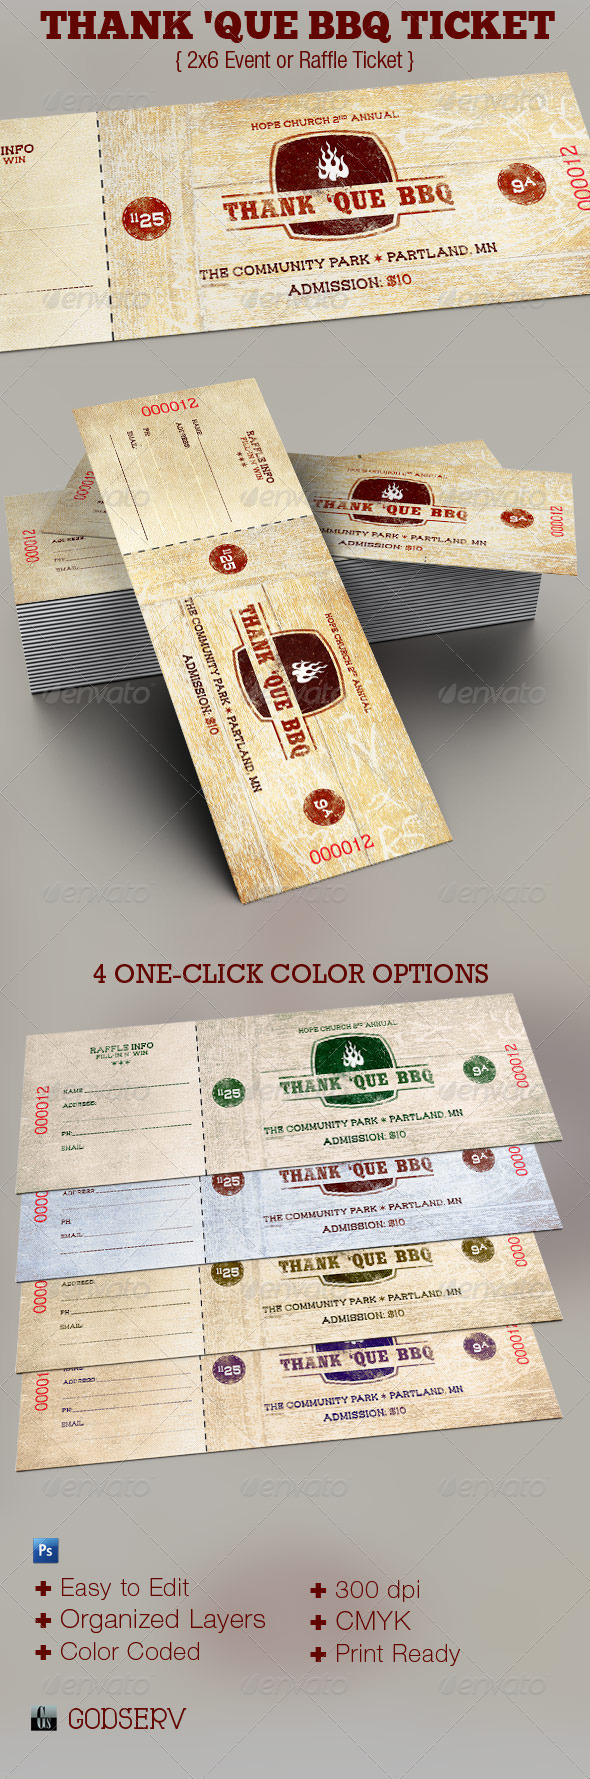 bbq ticket template free - thank que western bbq charity ticket template graphicriver